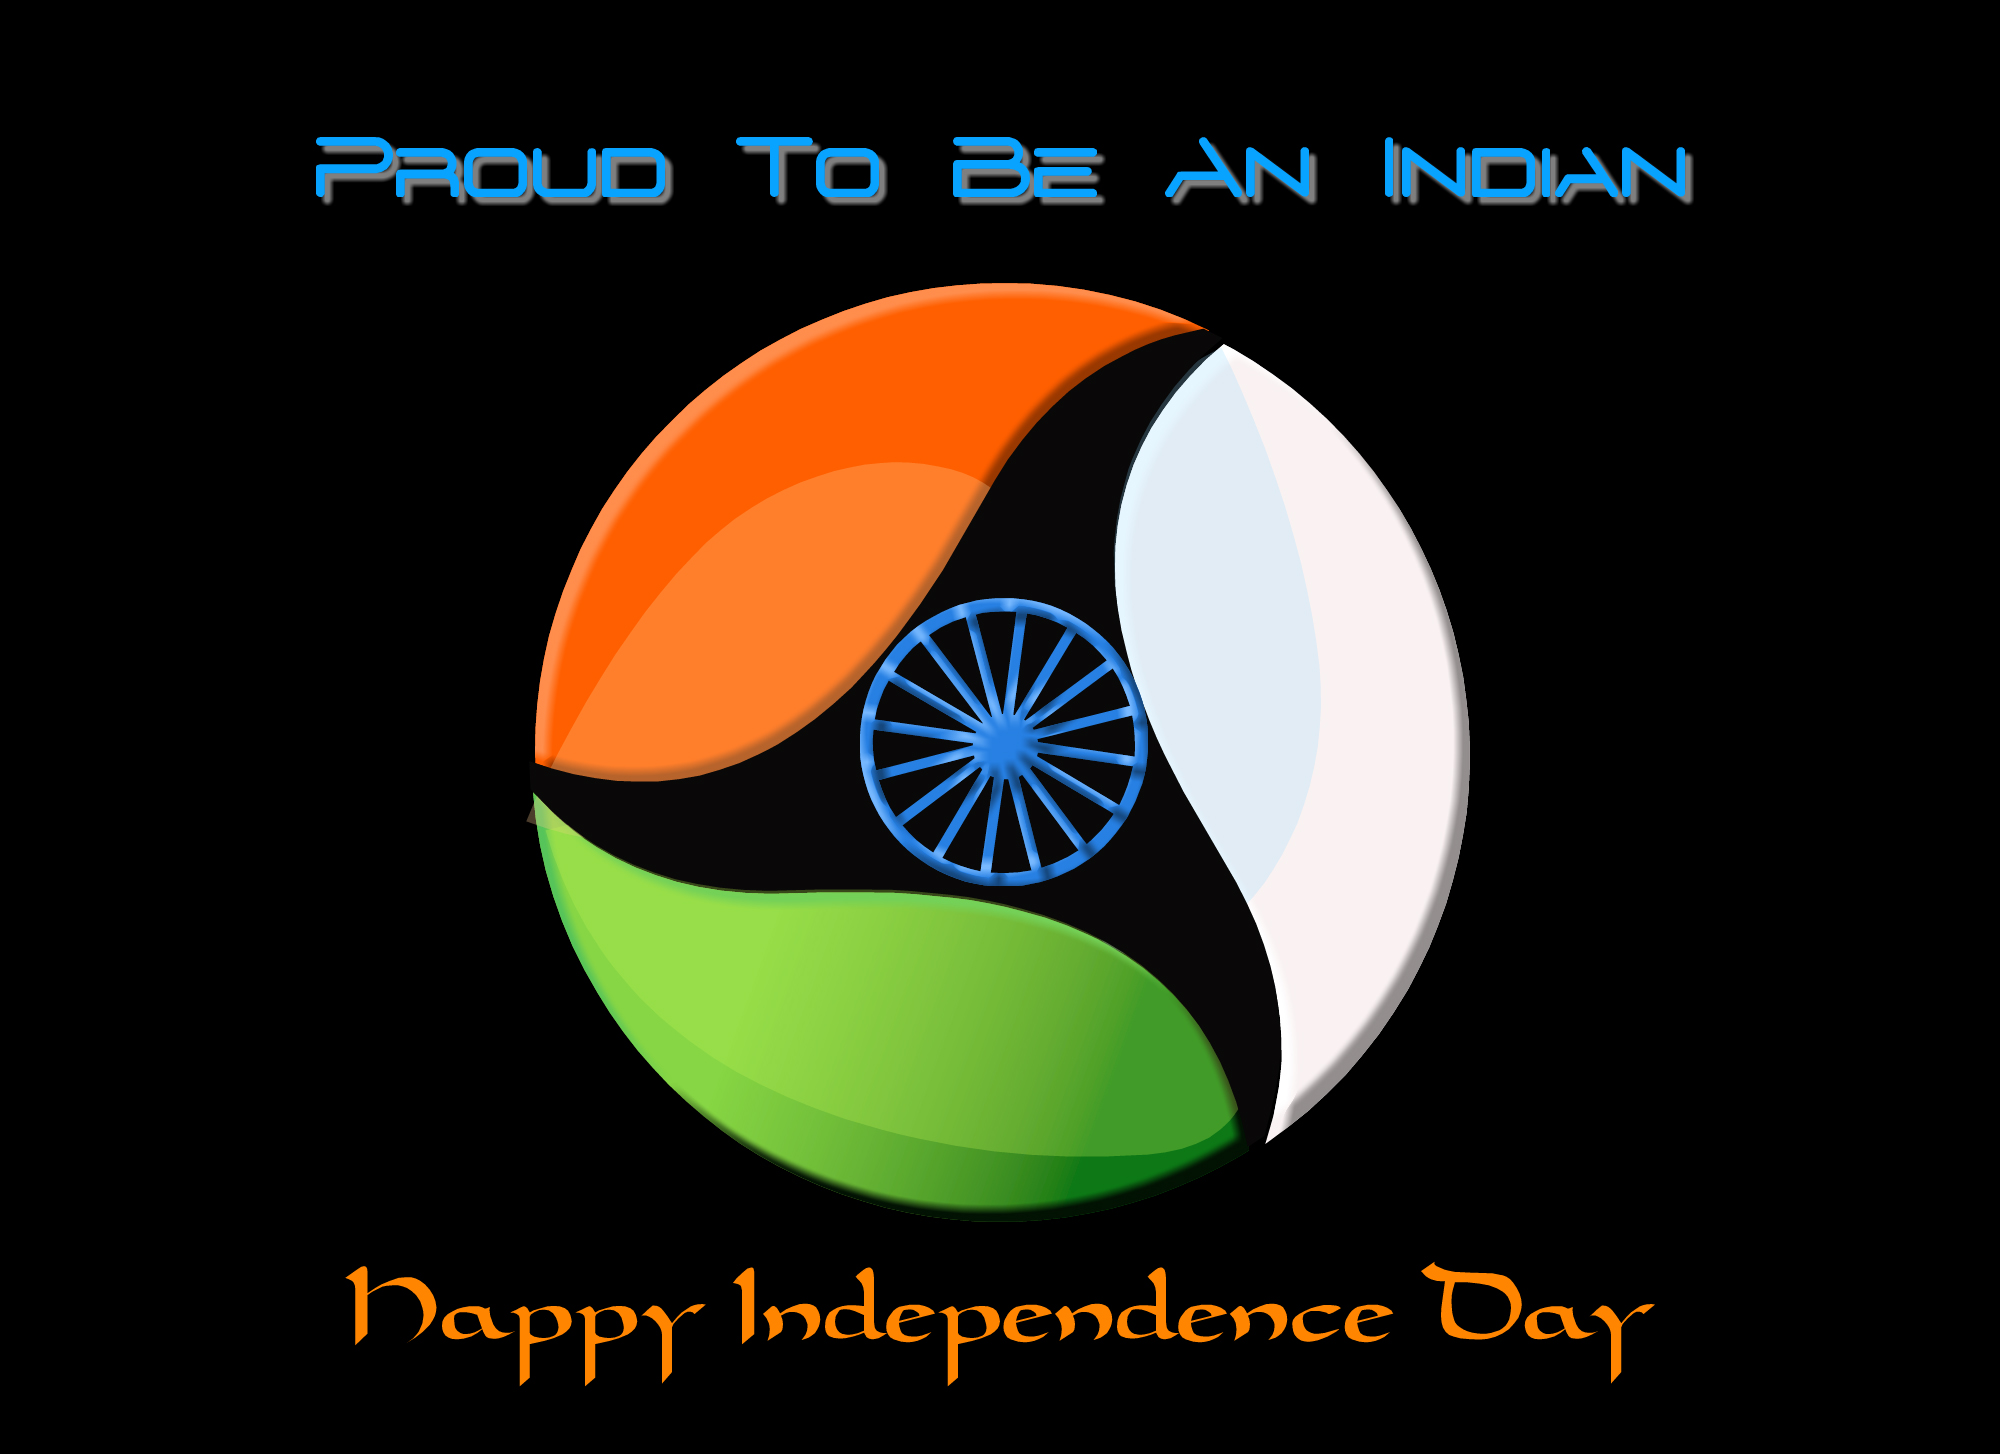 Proud to be an INDIAN! | India quotes, Happy independence day quotes,  Independence day quotes